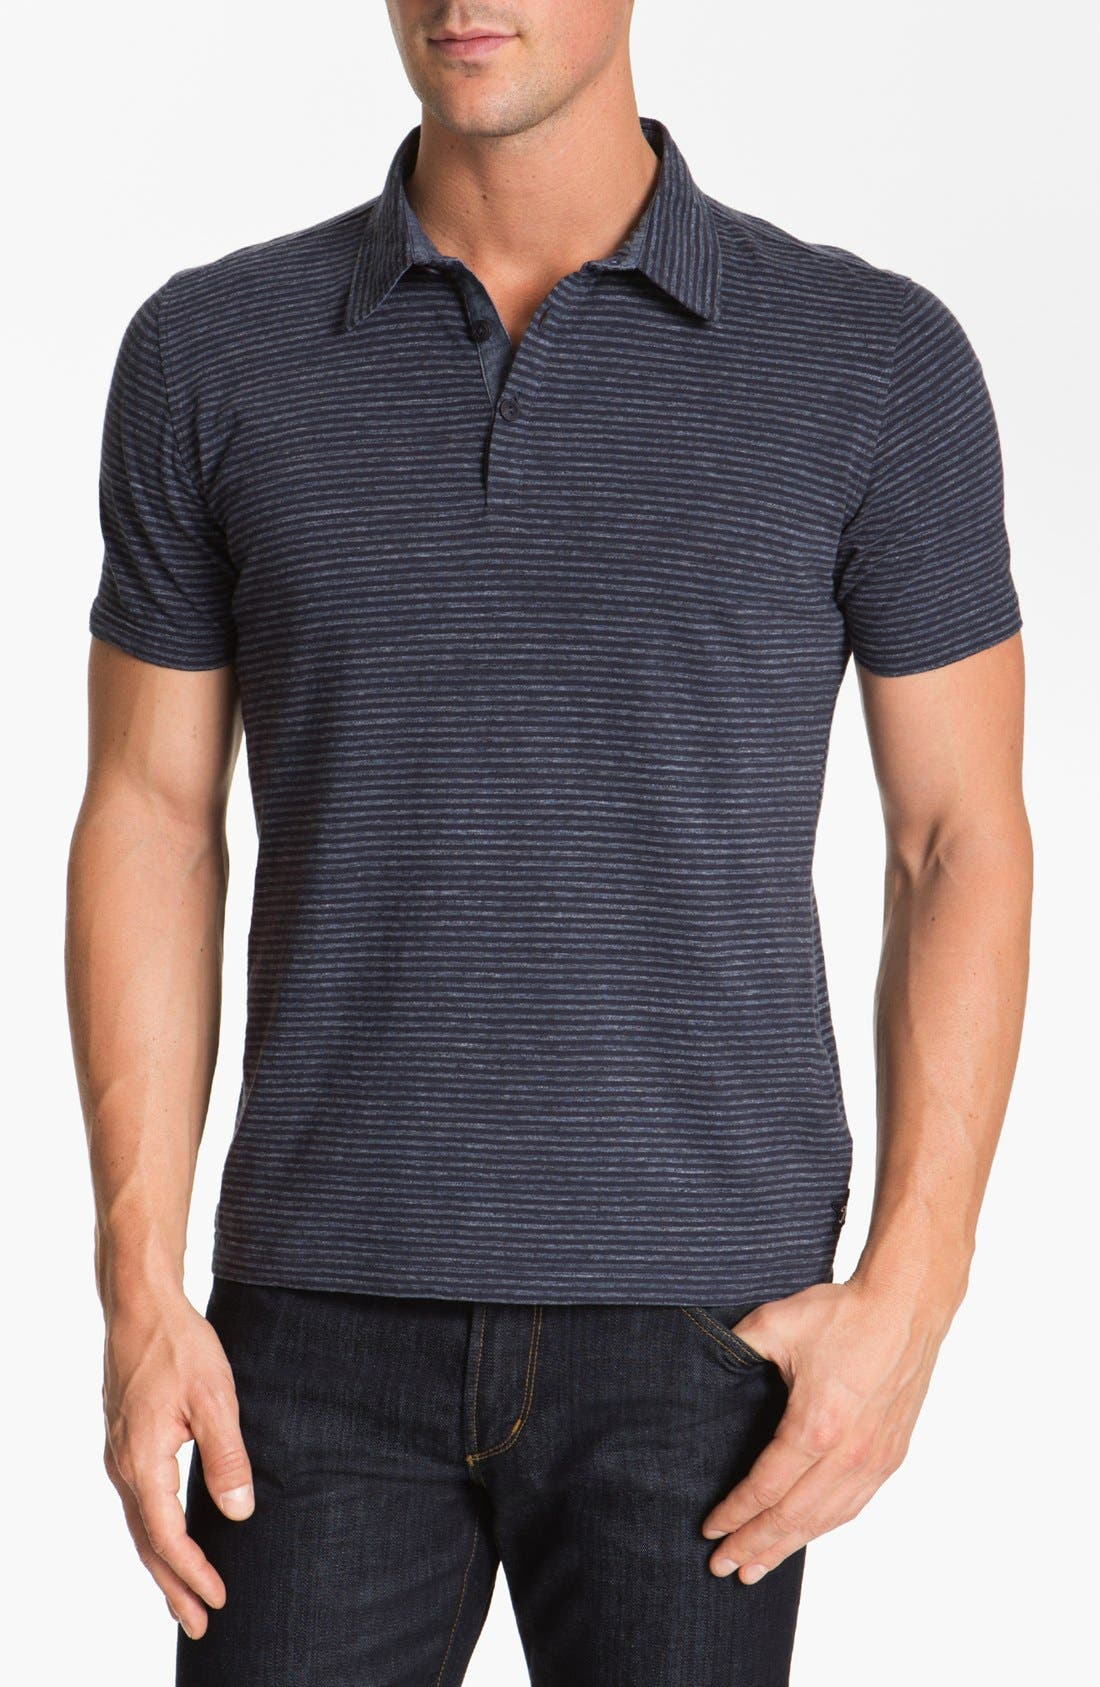 Main Image - Façonnable Tailored Denim Knit Polo